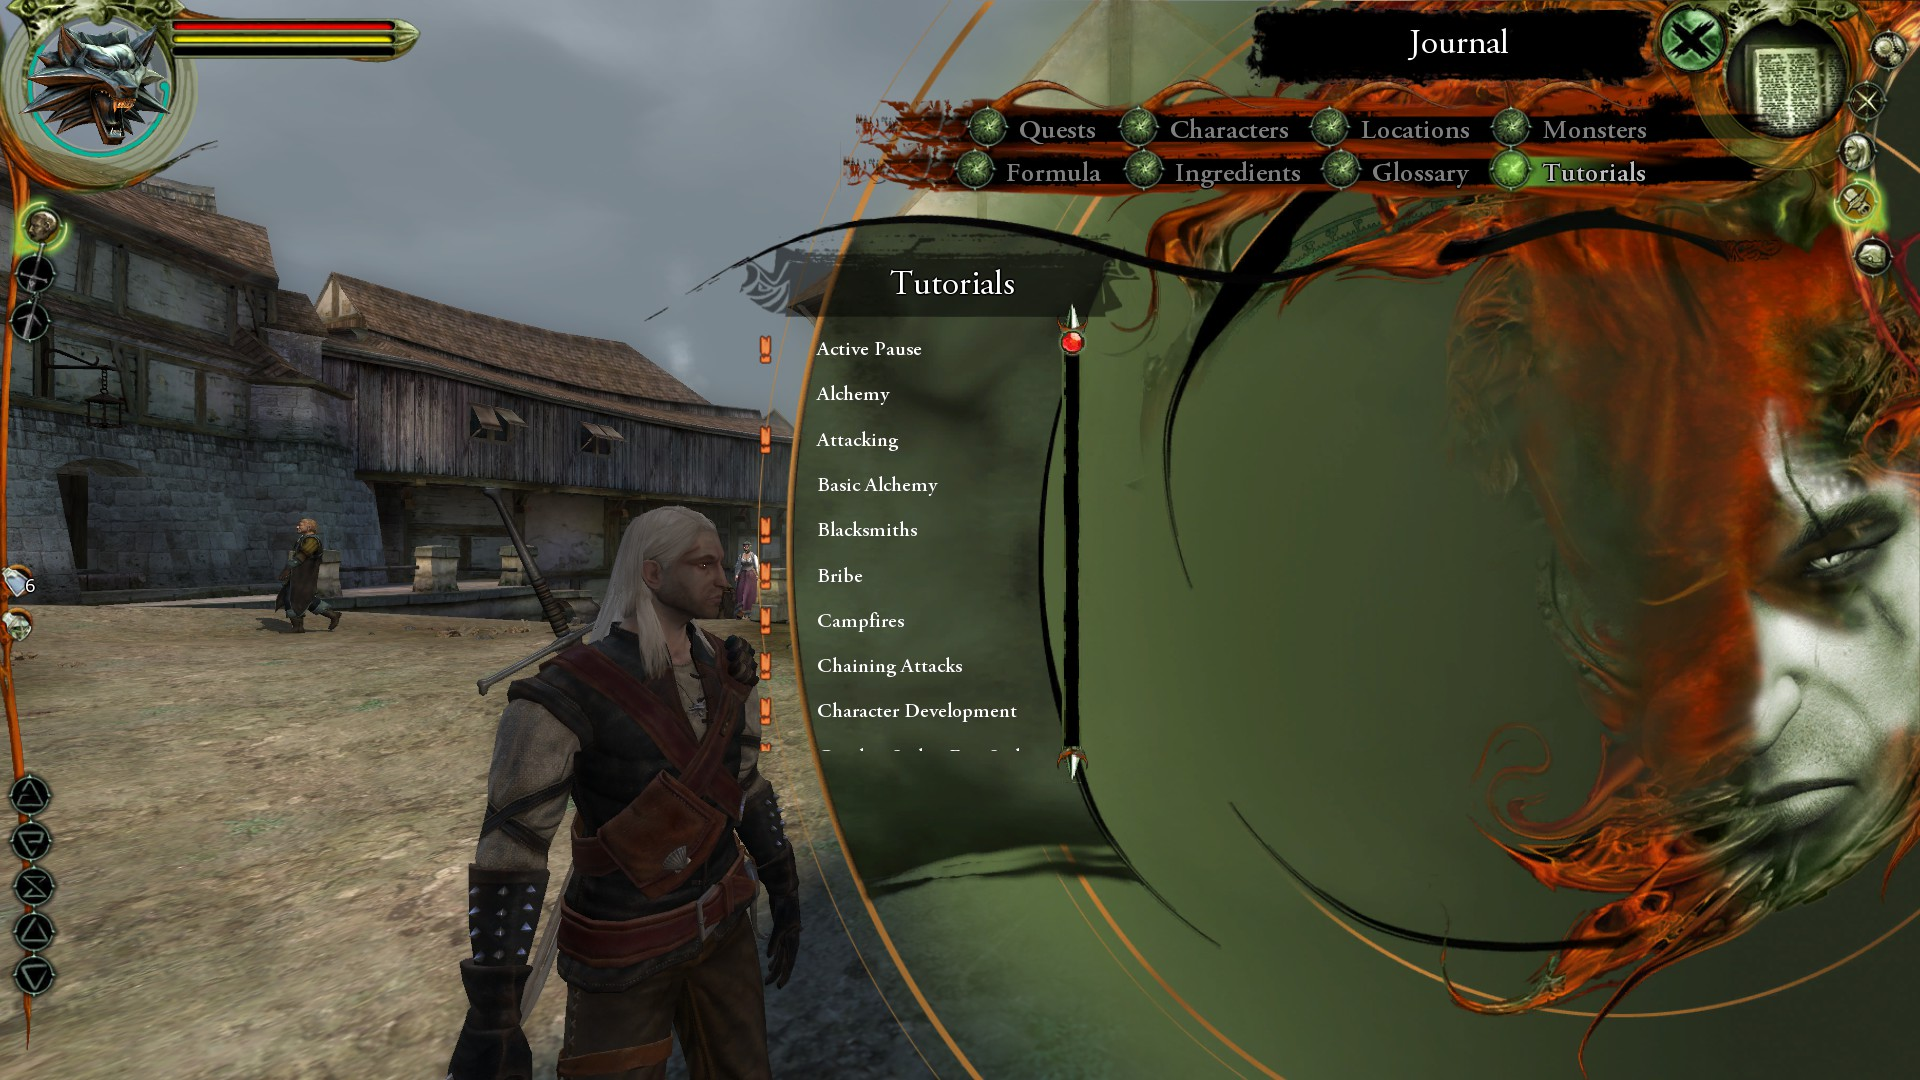 Steam Community :: Guide :: A Beginner's Guide to The Witcher